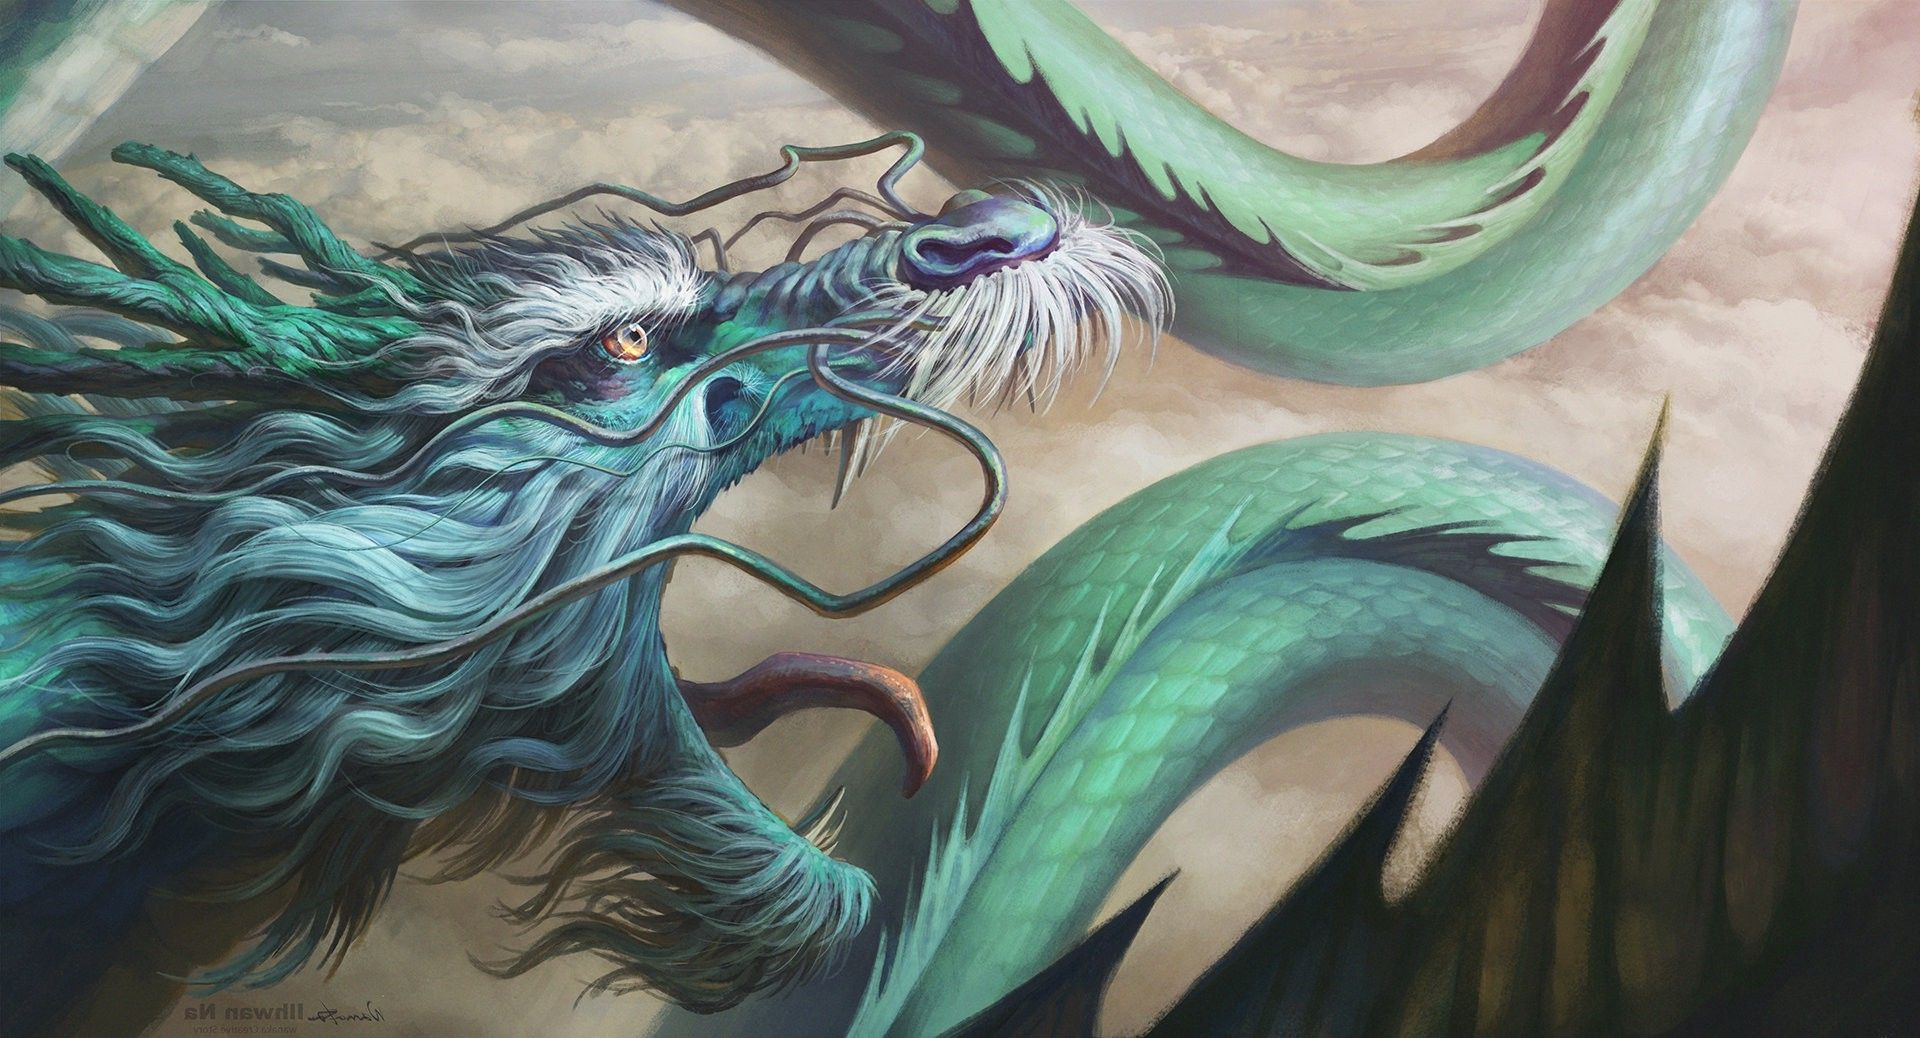 Artwork Fantasy Art Dragon Chinese Dragon Wallpaper In